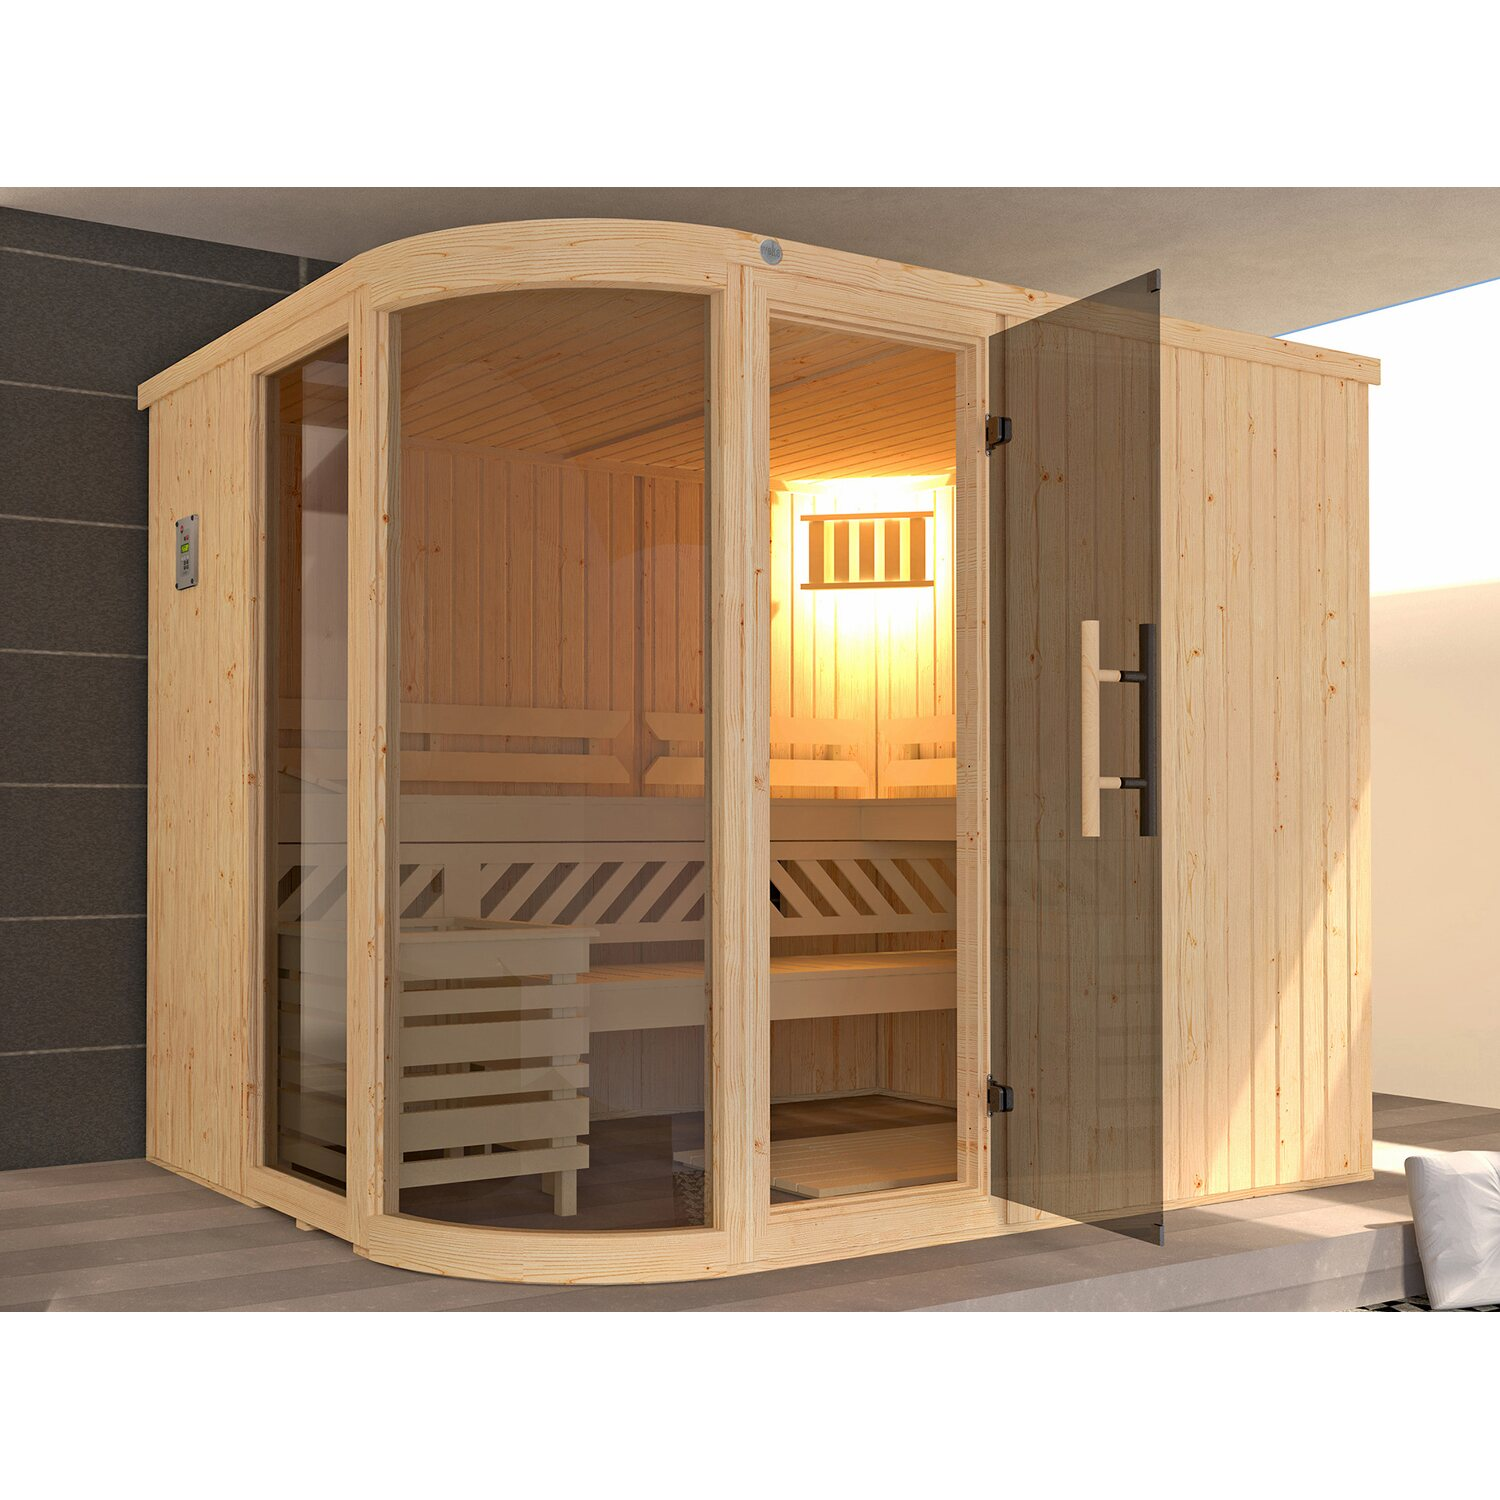 weka design sauna sara bios 244x194x199 kaufen bei obi. Black Bedroom Furniture Sets. Home Design Ideas